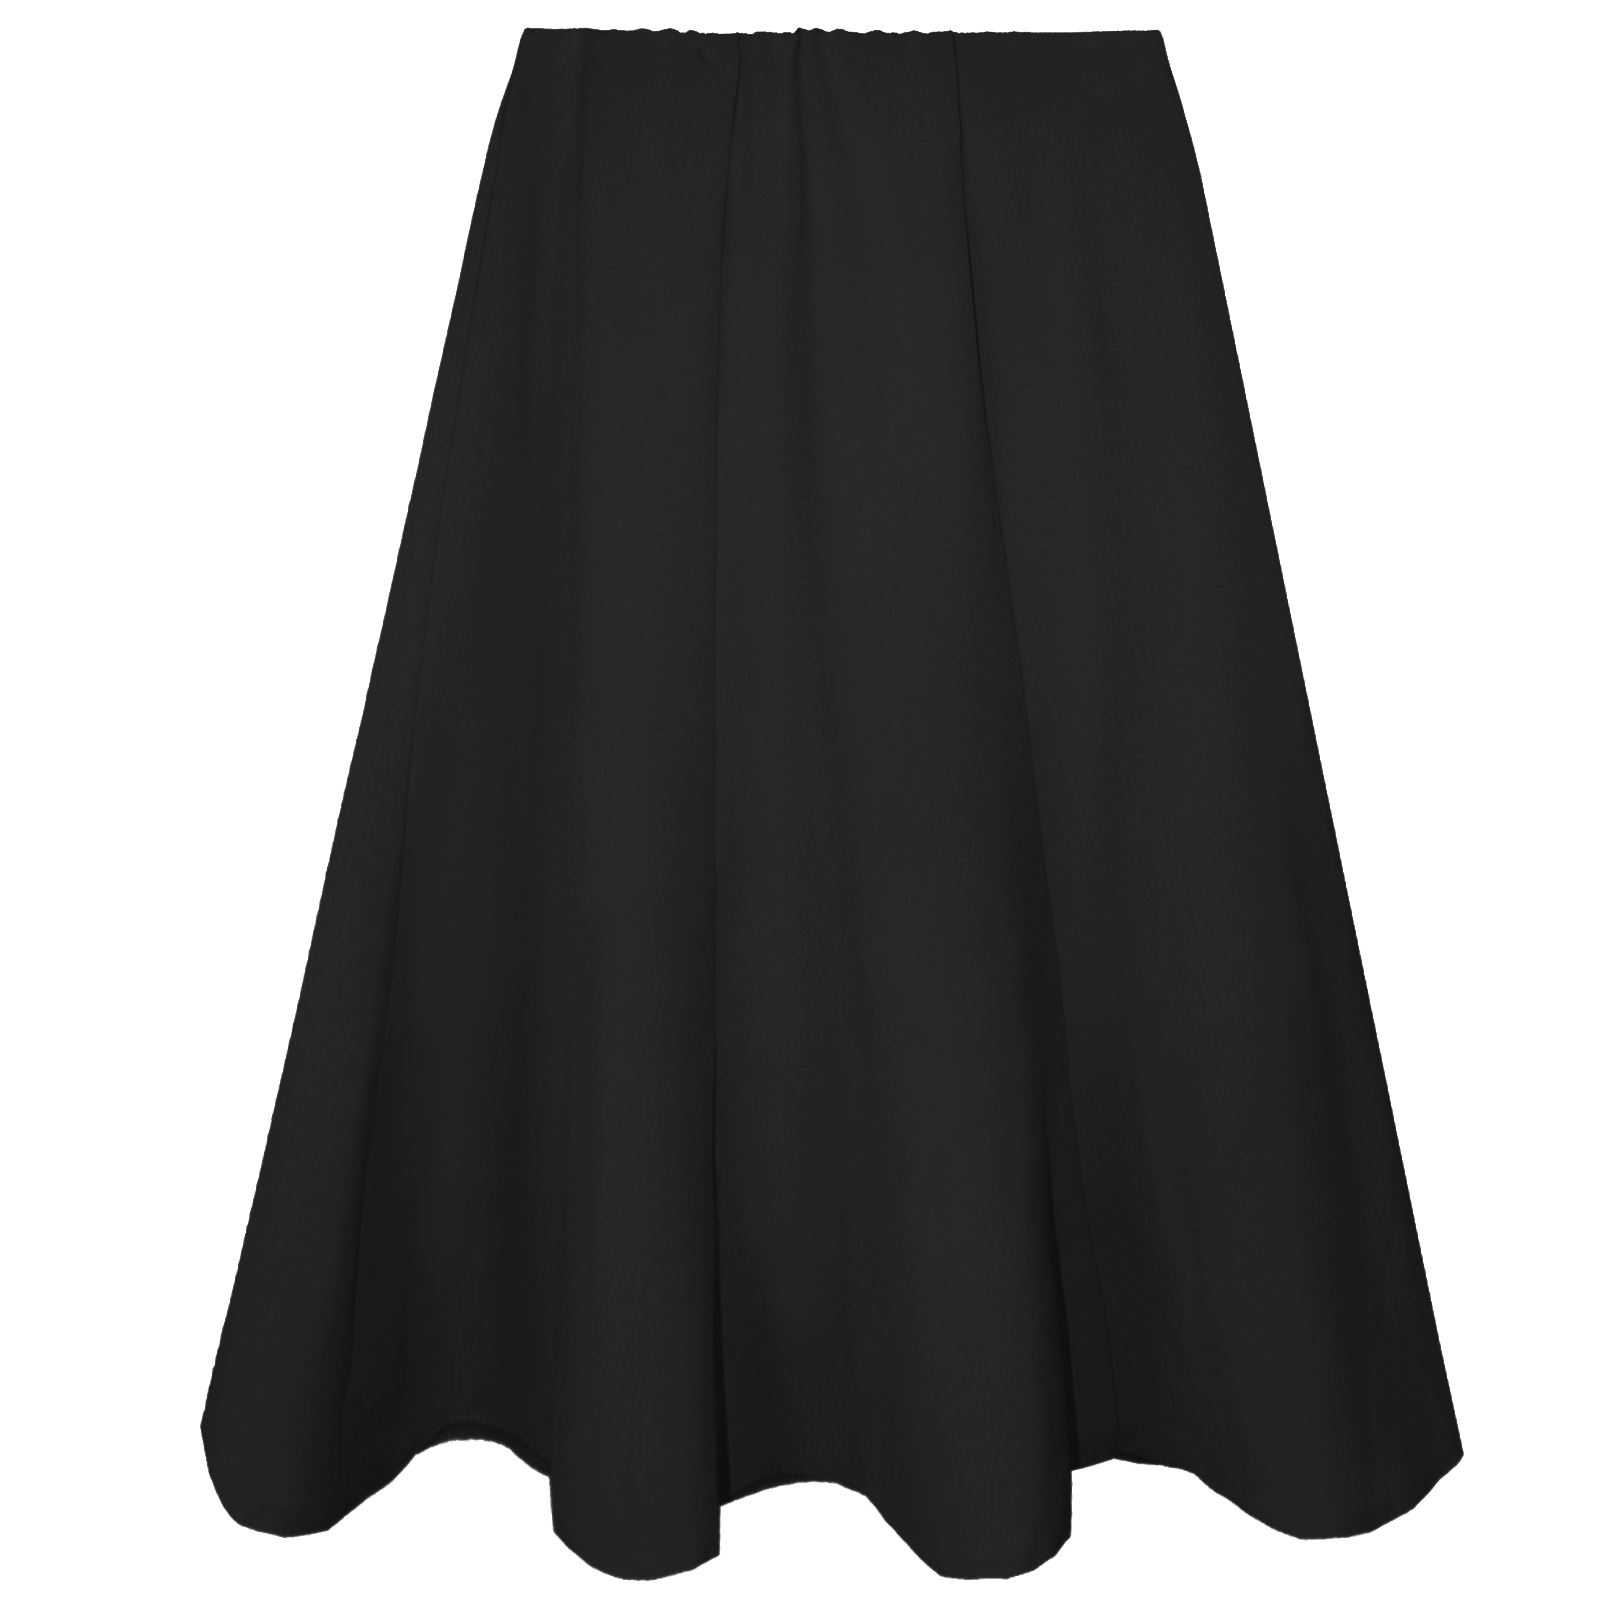 WOMEN-LONG-FLARED-SKIRTS-LADIES-SKATER-SWING-MIDI-ELASTICATED-WAIST-WORK-OFFICE